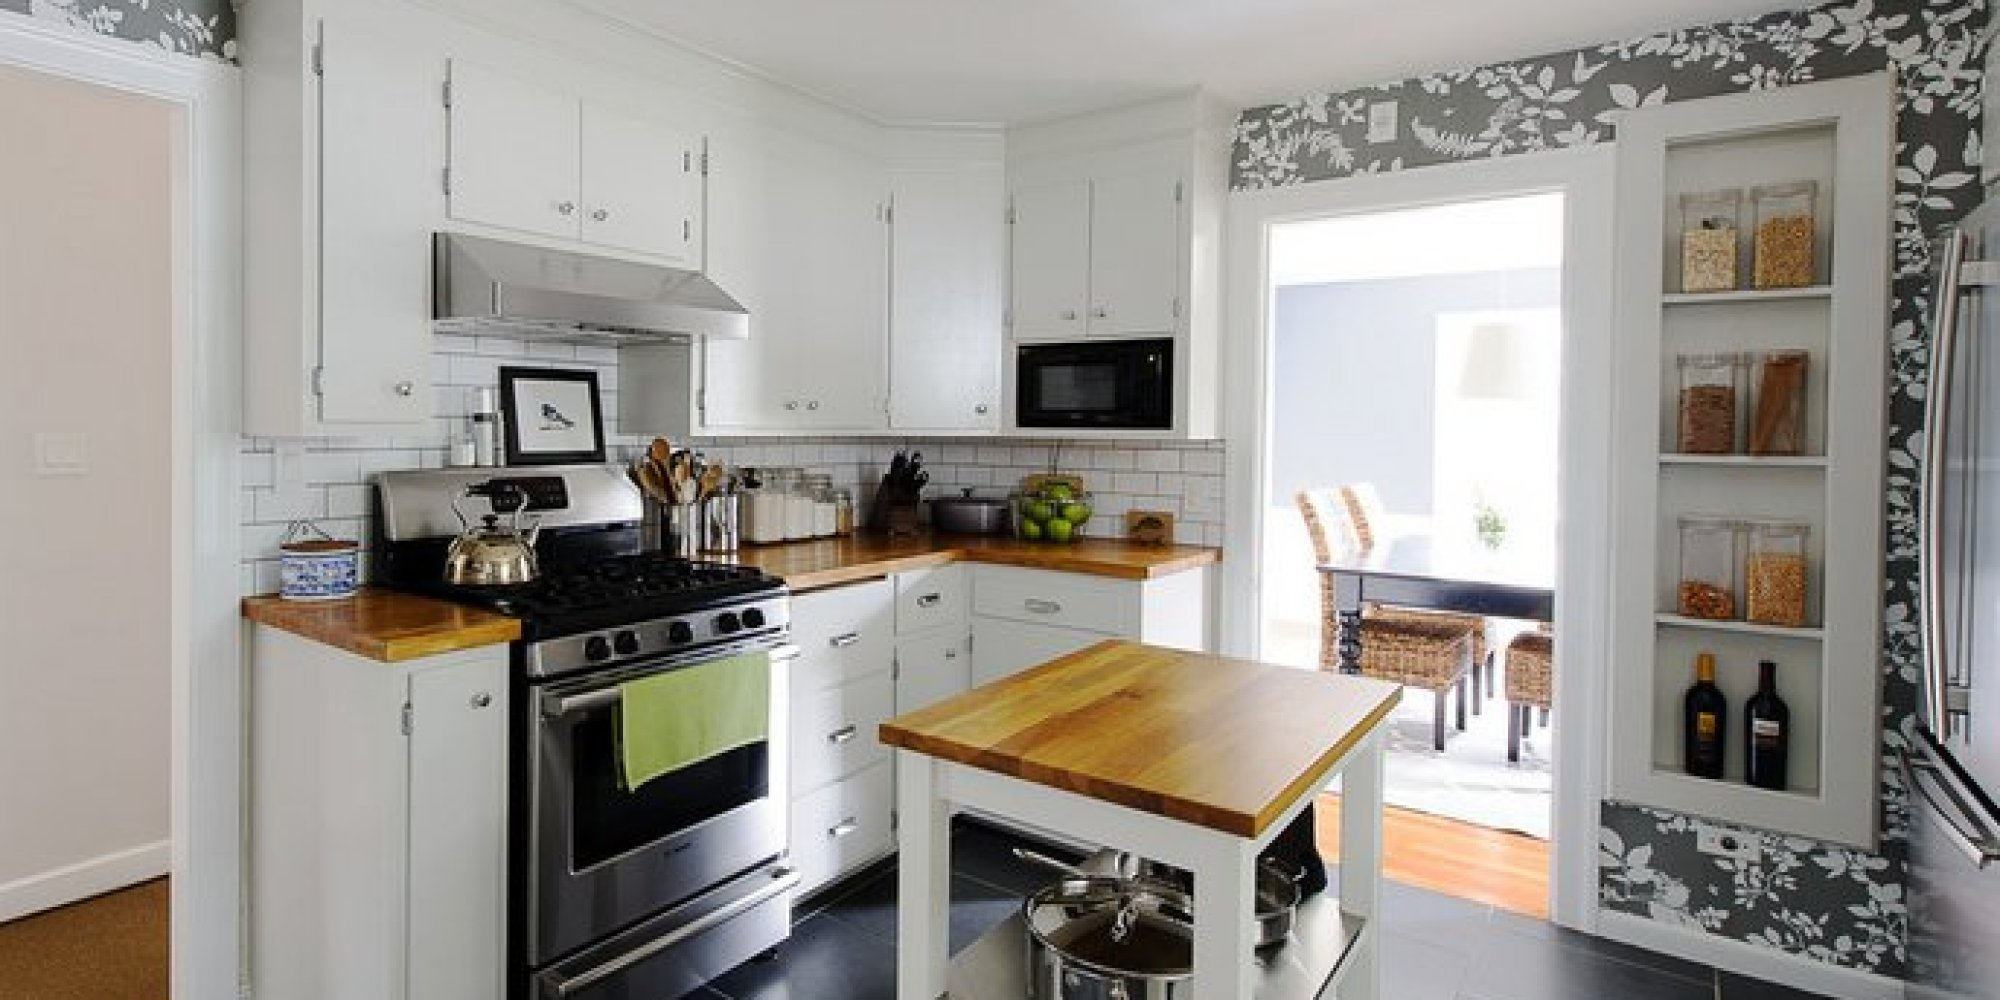 19 inexpensive ways to fix up your kitchen photos huffpost for Low cost kitchen ideas